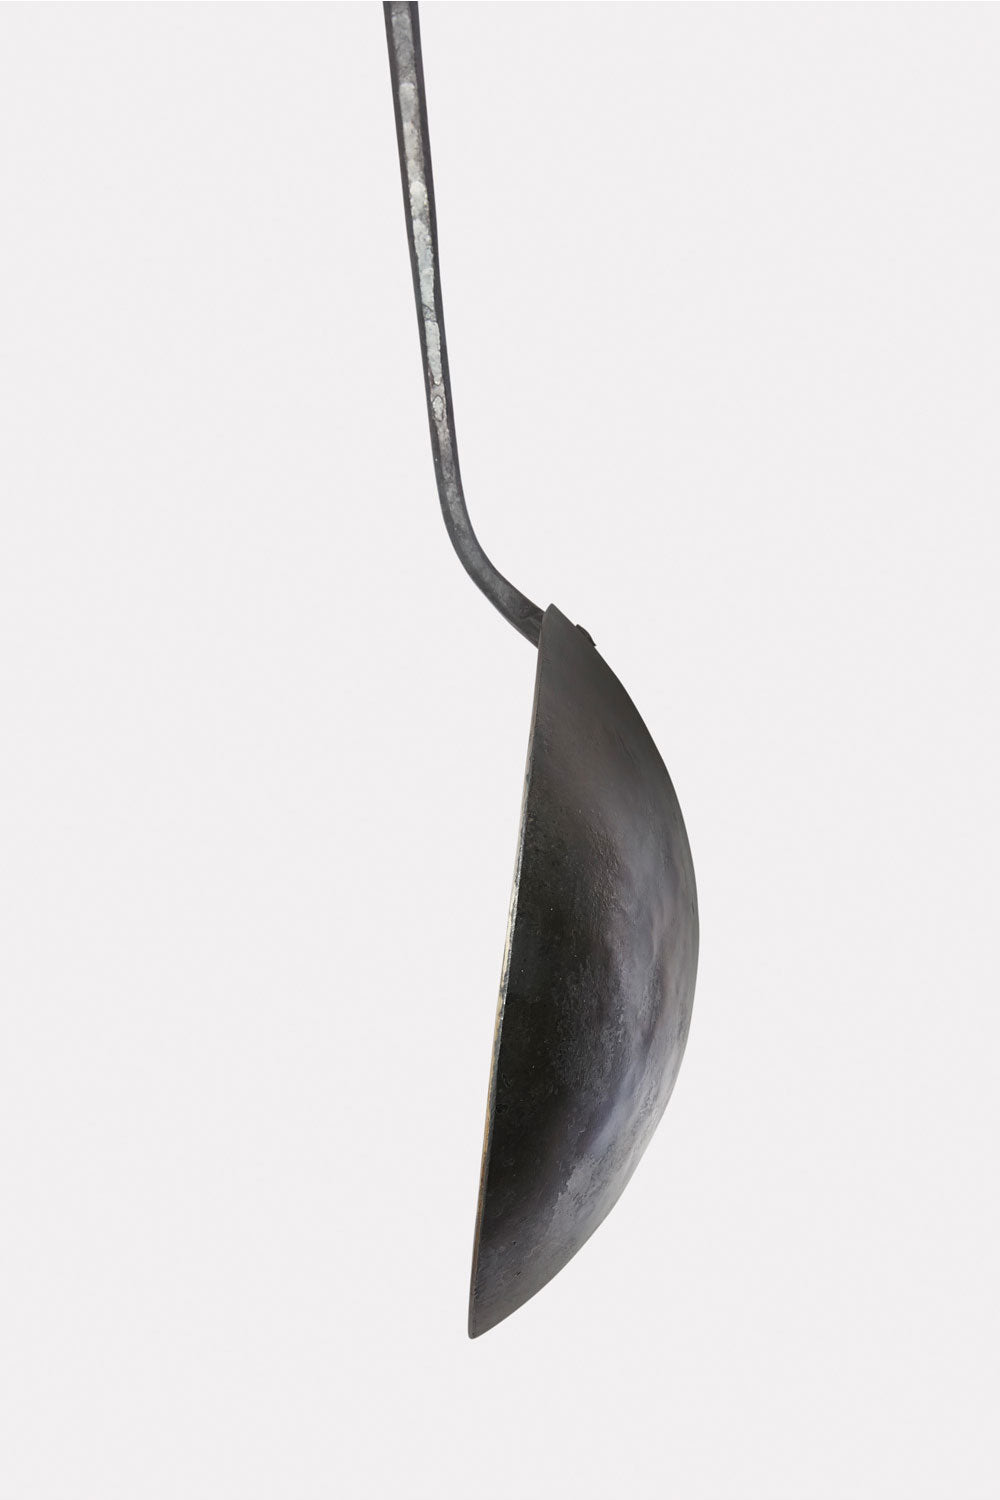 Permanent-Collection---Alice's-Egg-Spoon-2